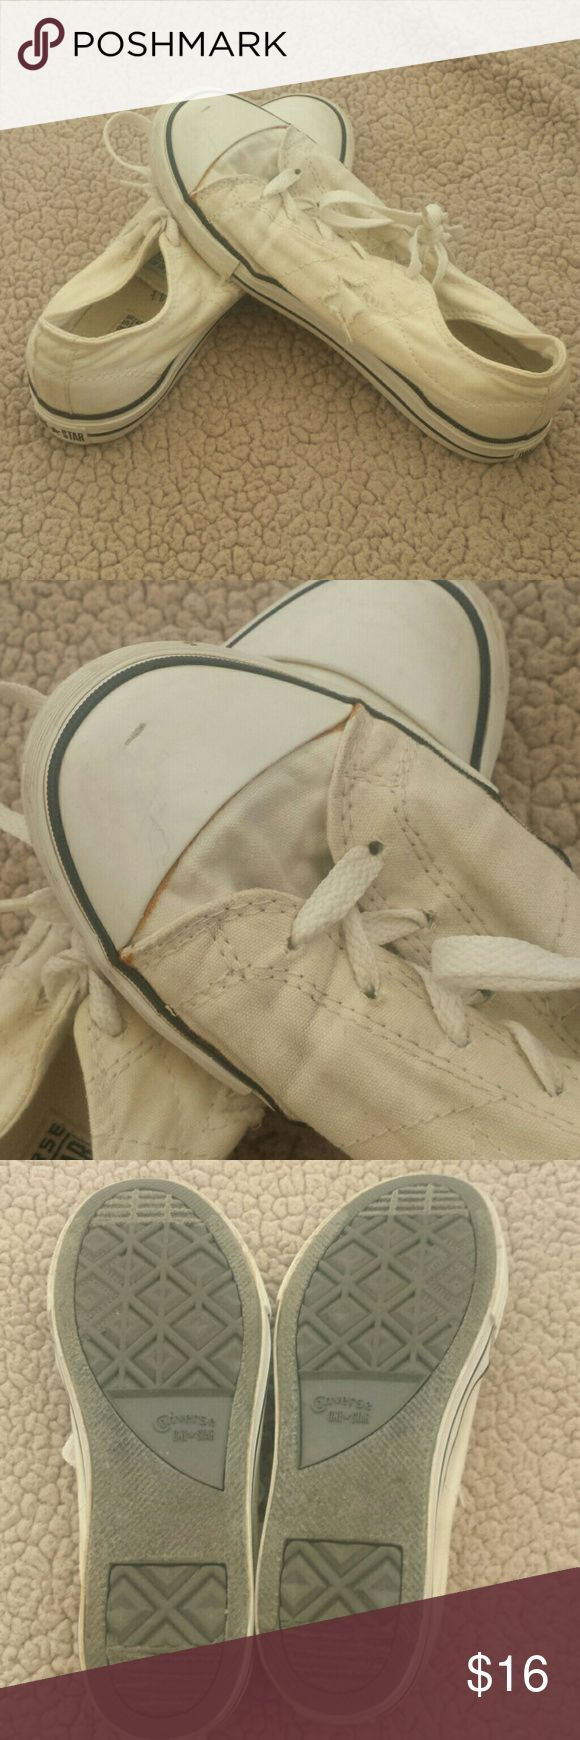 Converse shoes Ladies white (now off white) converse. These are a junior 5, but fit a 7. They've been worn and washed. Left sows some damage (see pic). But still in ok shape. Bundle for only $8. I ship items out daily and live in a smoke free home! ! Converse  Shoes Flats & Loafers